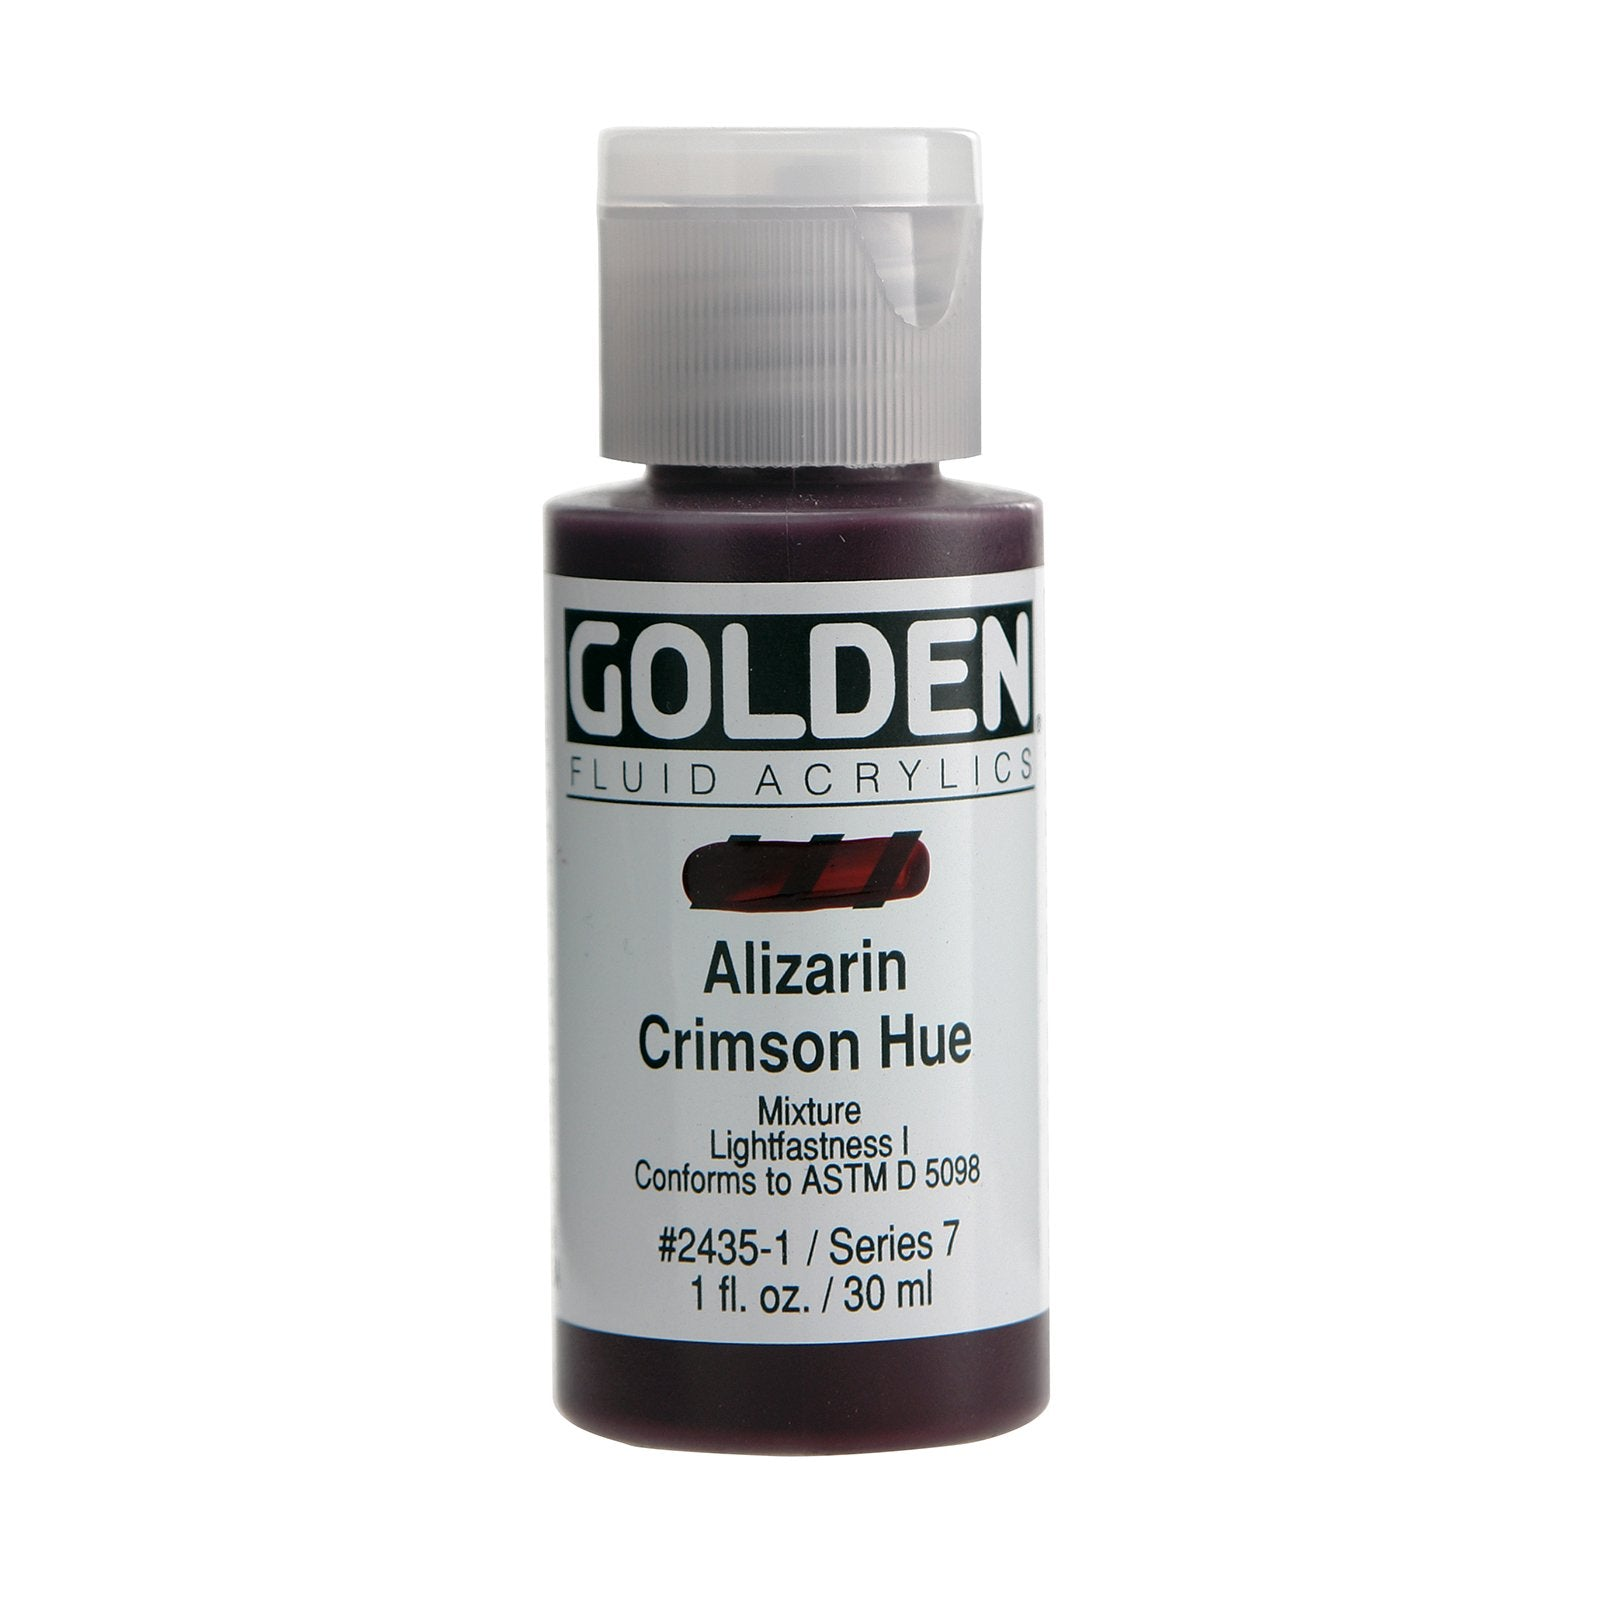 Golden® Fluid Acrylic, 1 oz., Alizarin Crimson Hue